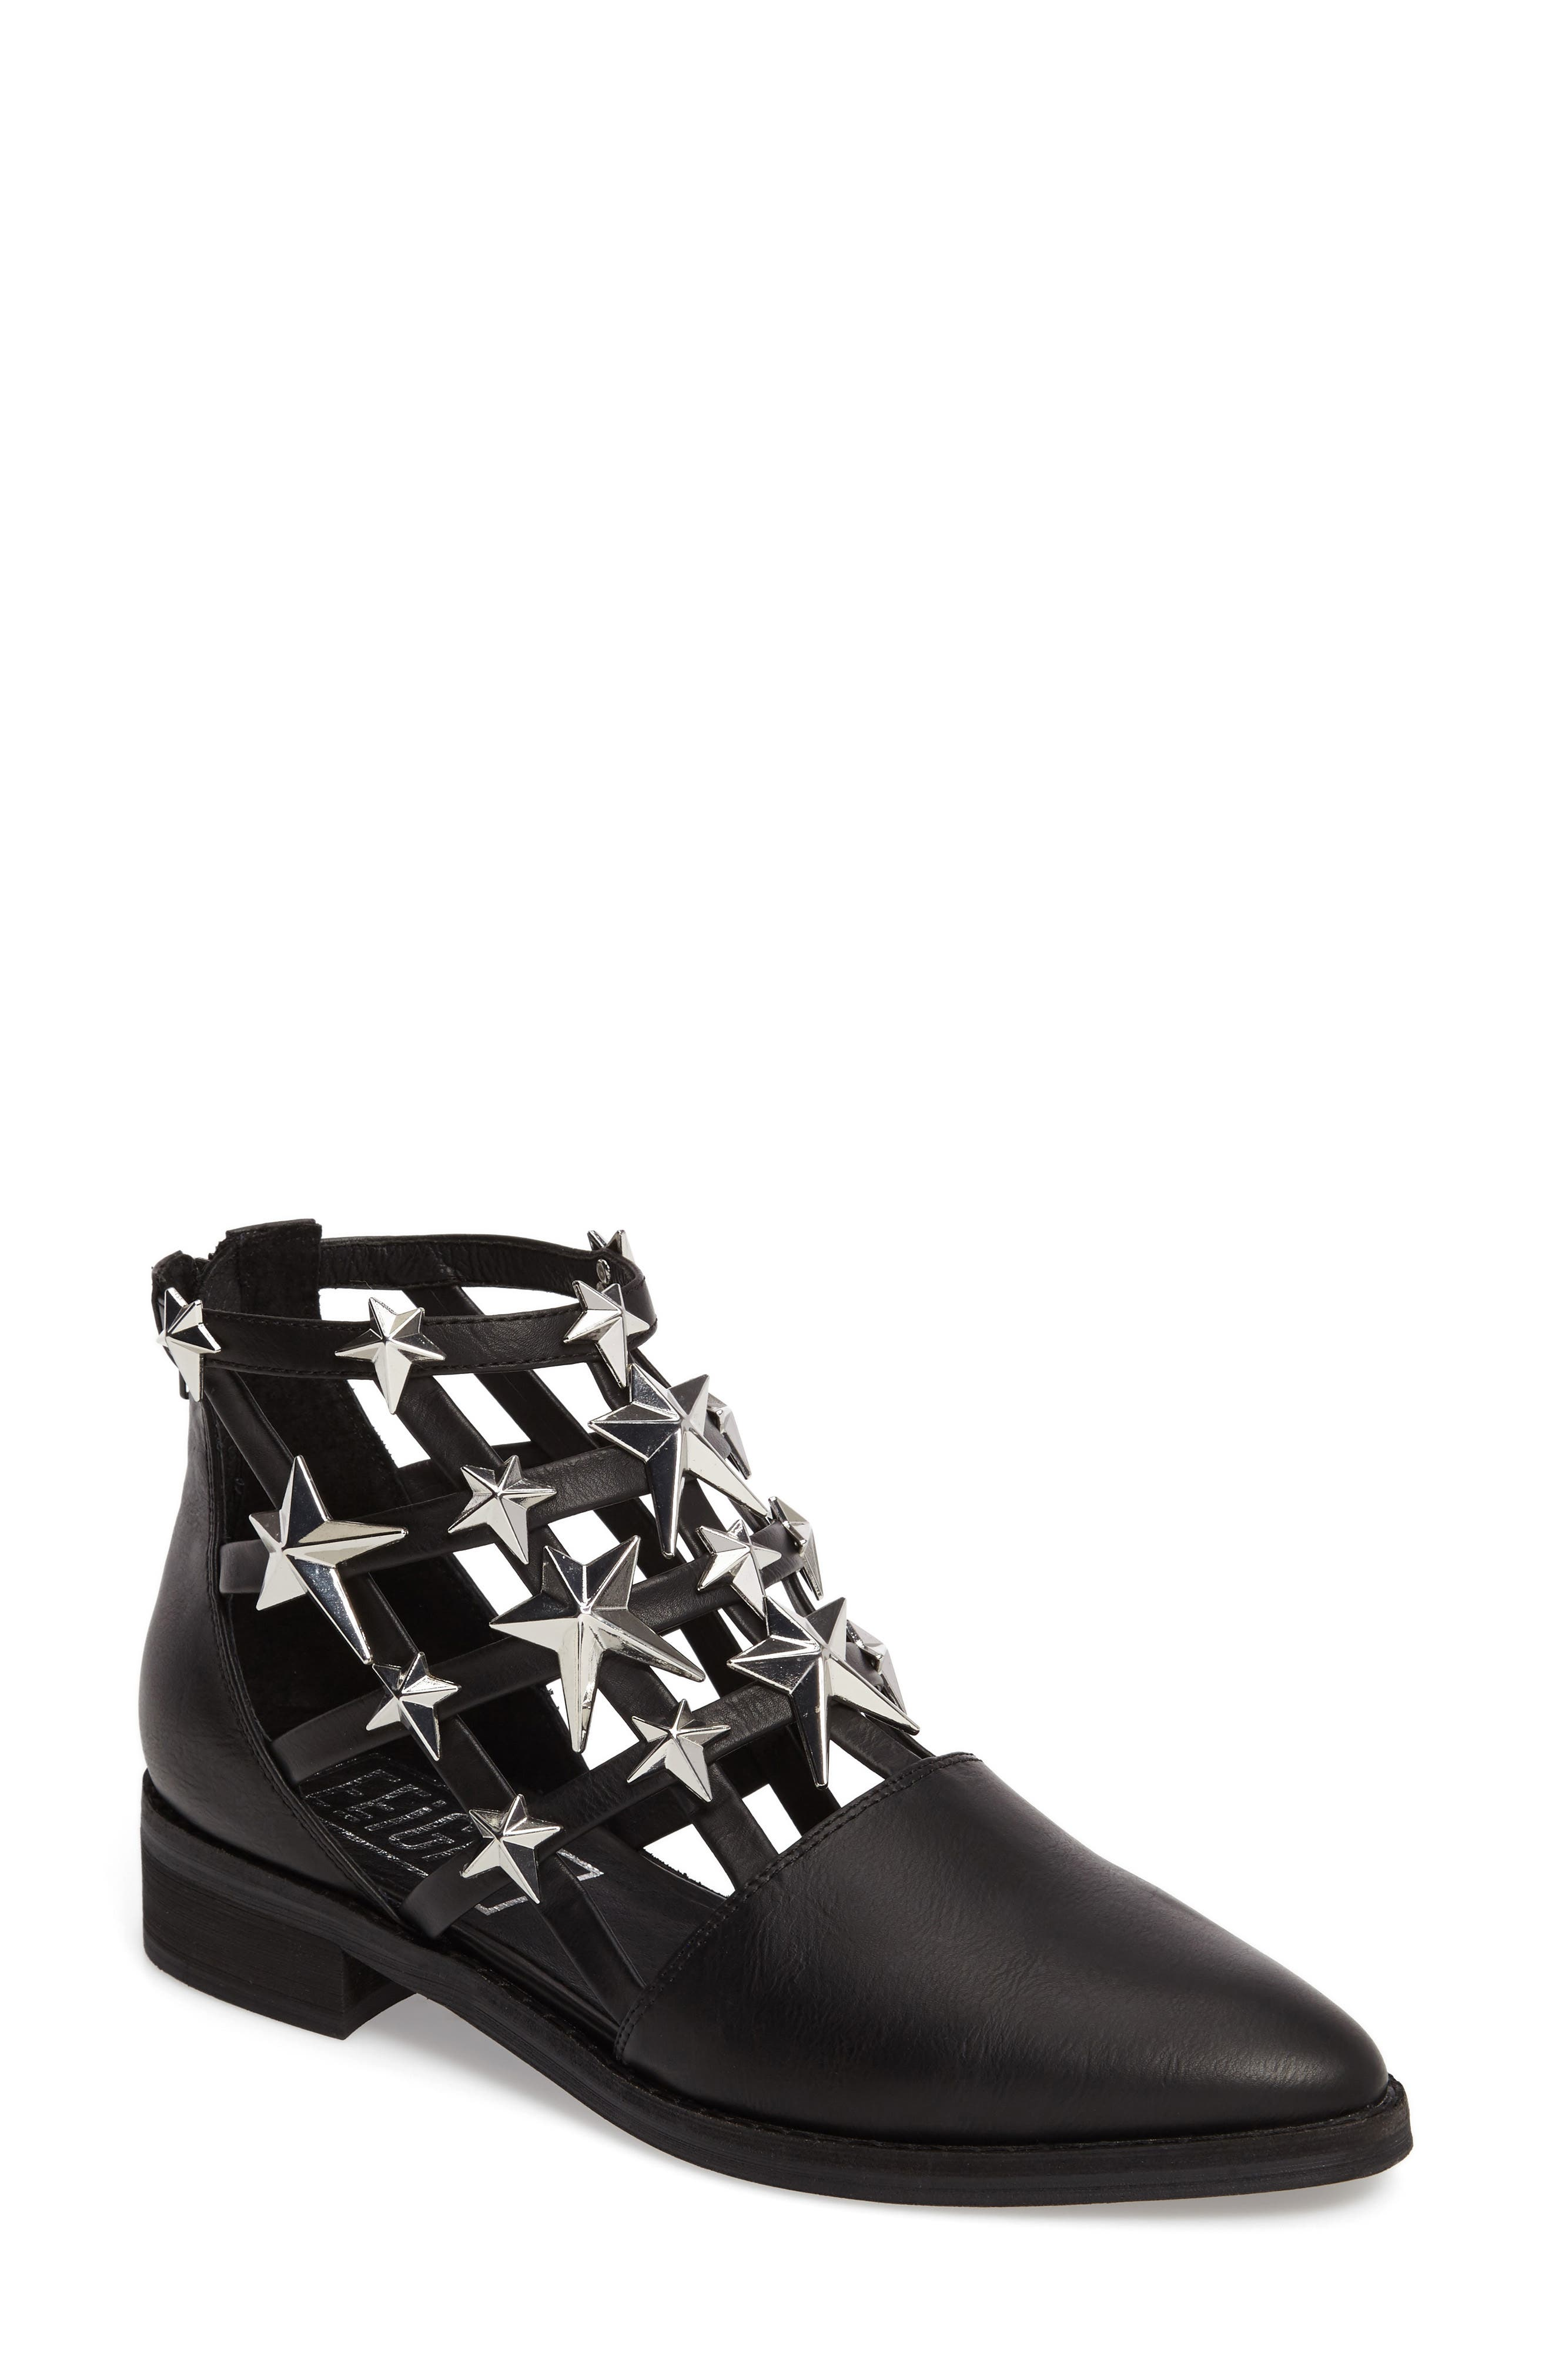 E8 by Miista Nelly Cutout Bootie (Women)